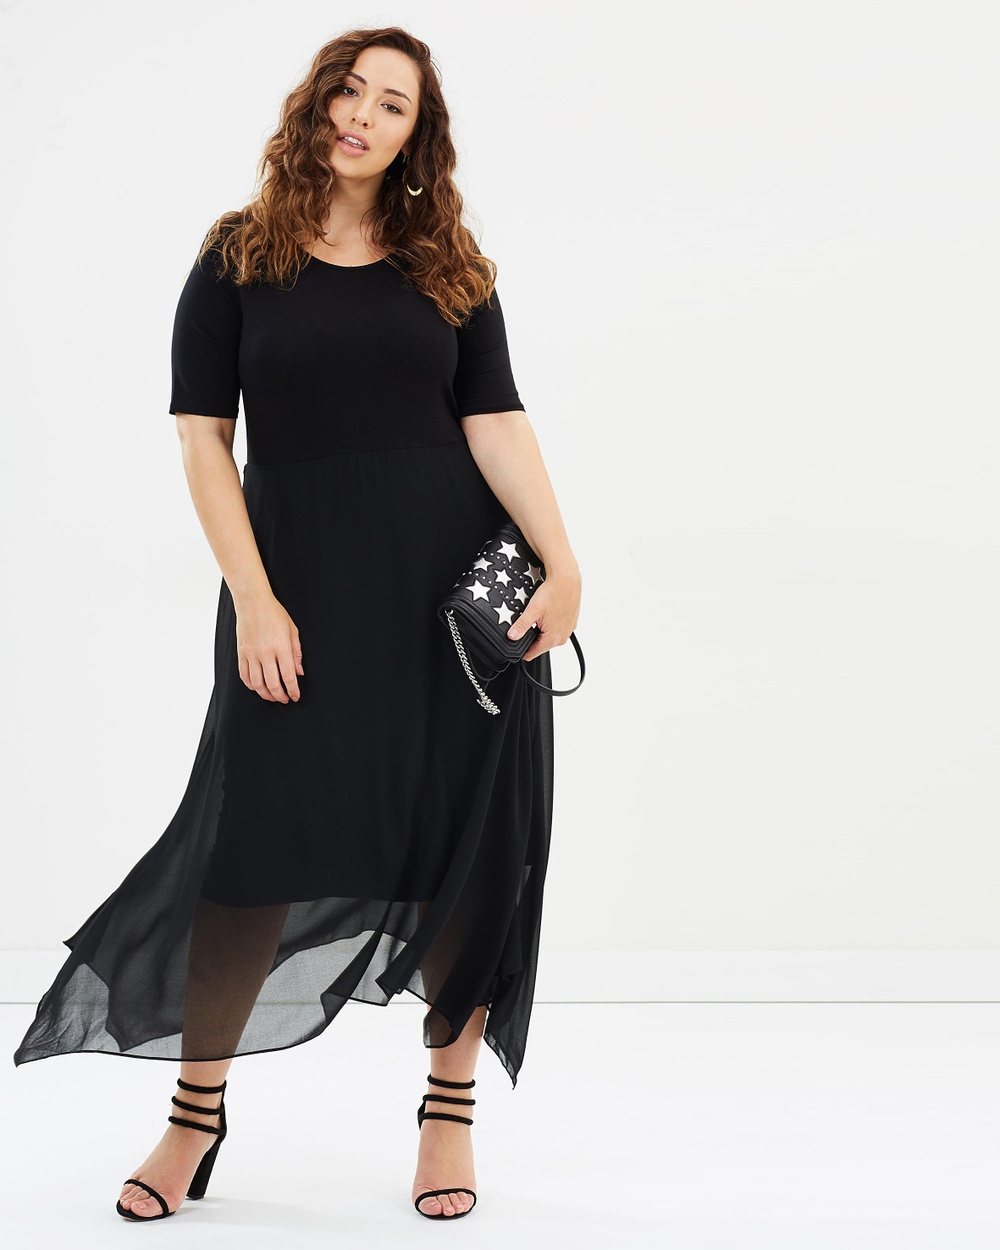 EVANS Hanky Hem Dress Dresses Black Hanky Hem Dress